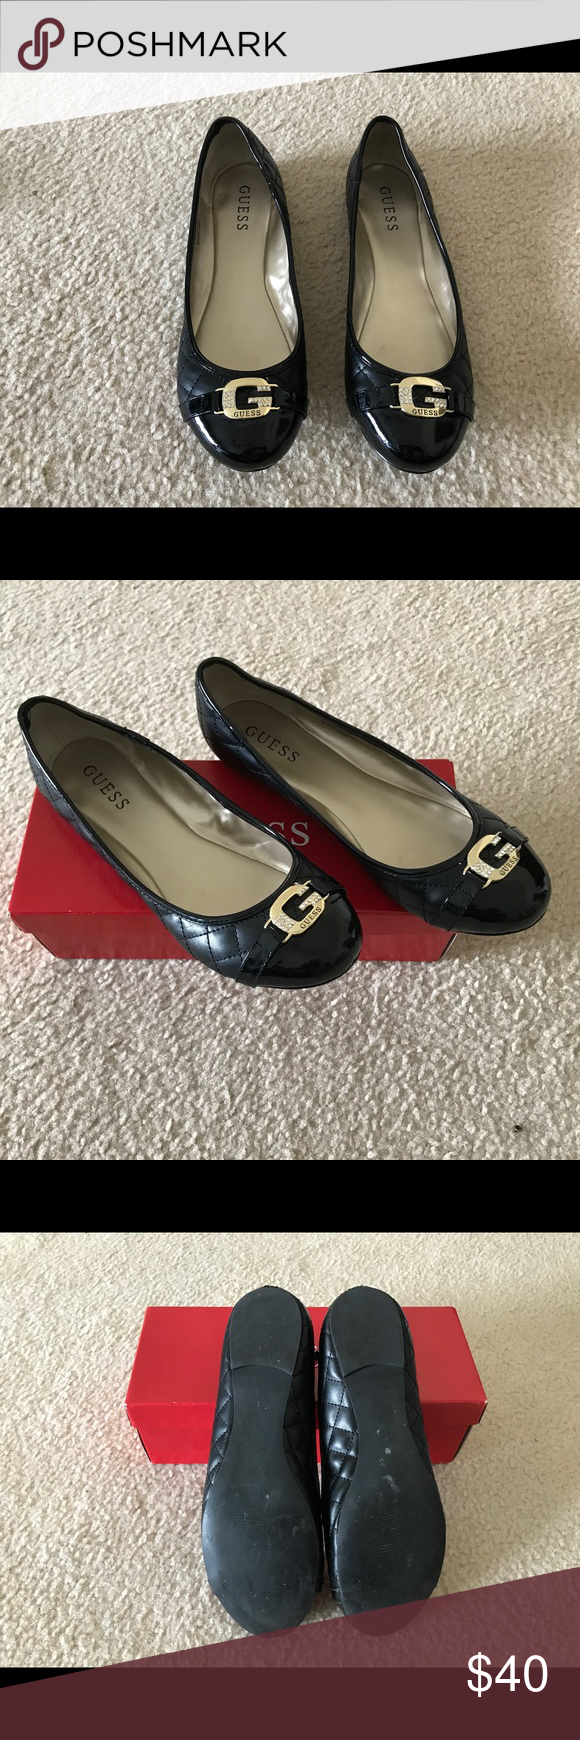 Guess Black with Gold Buckle Ballerina Flats Guess Black with Gold Buckle  Ballerina Flats. Size 9. Great condition!! Worn 2 x s!! d7a6122b36